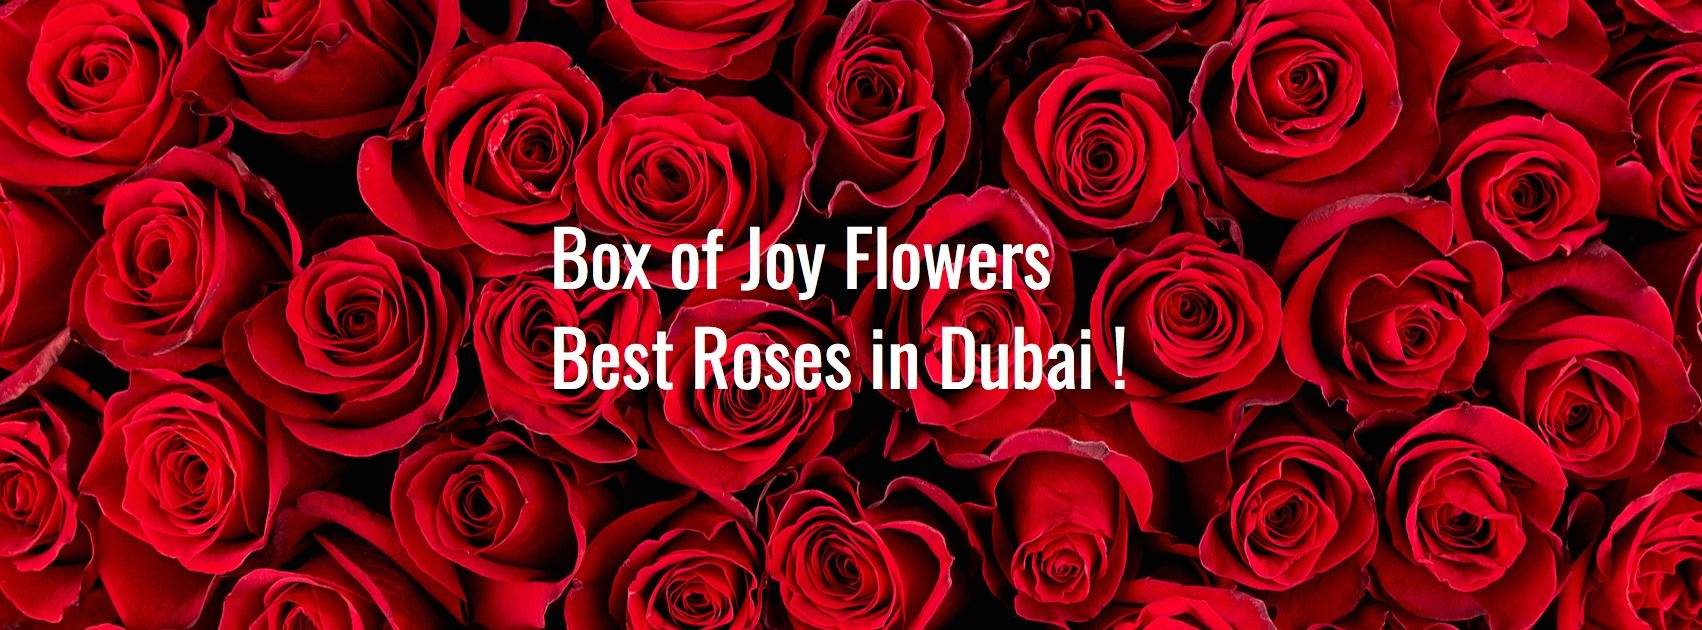 Box of Joy Flowers  (@boxofjoyflowers) Cover Image